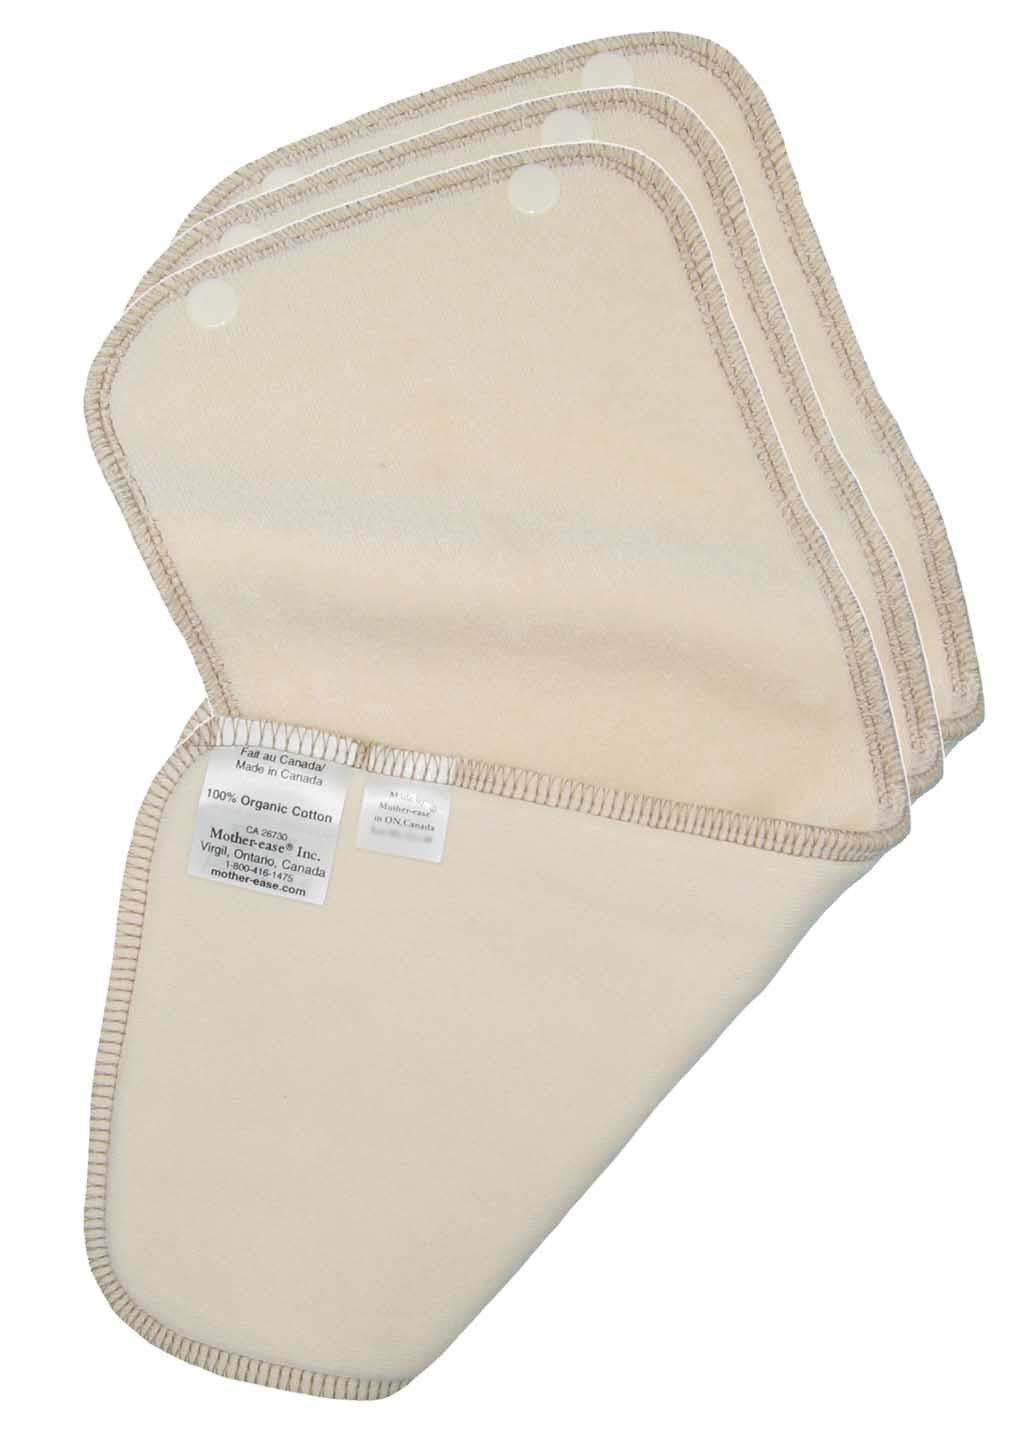 Snap in Absorbent Liner - Organic Cotton